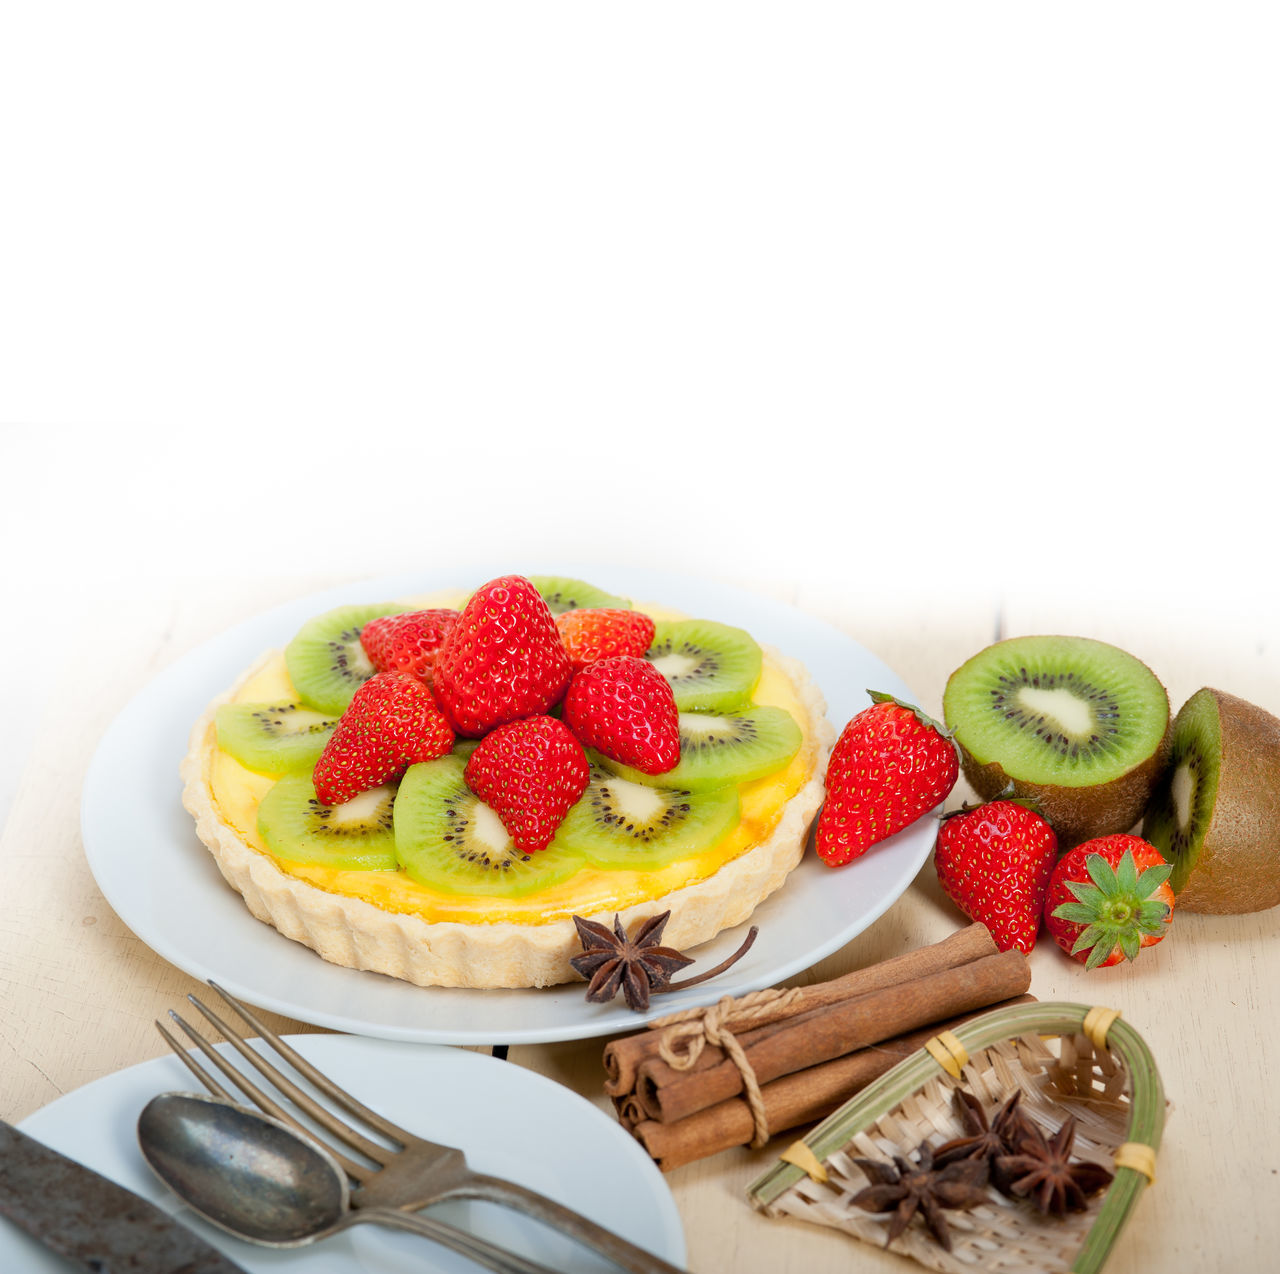 strawberry, fruit, food and drink, freshness, food, sweet food, dessert, kiwi, kiwi - fruit, white background, indulgence, copy space, studio shot, temptation, star anise, plate, ready-to-eat, unhealthy eating, no people, tart - dessert, close-up, indoors